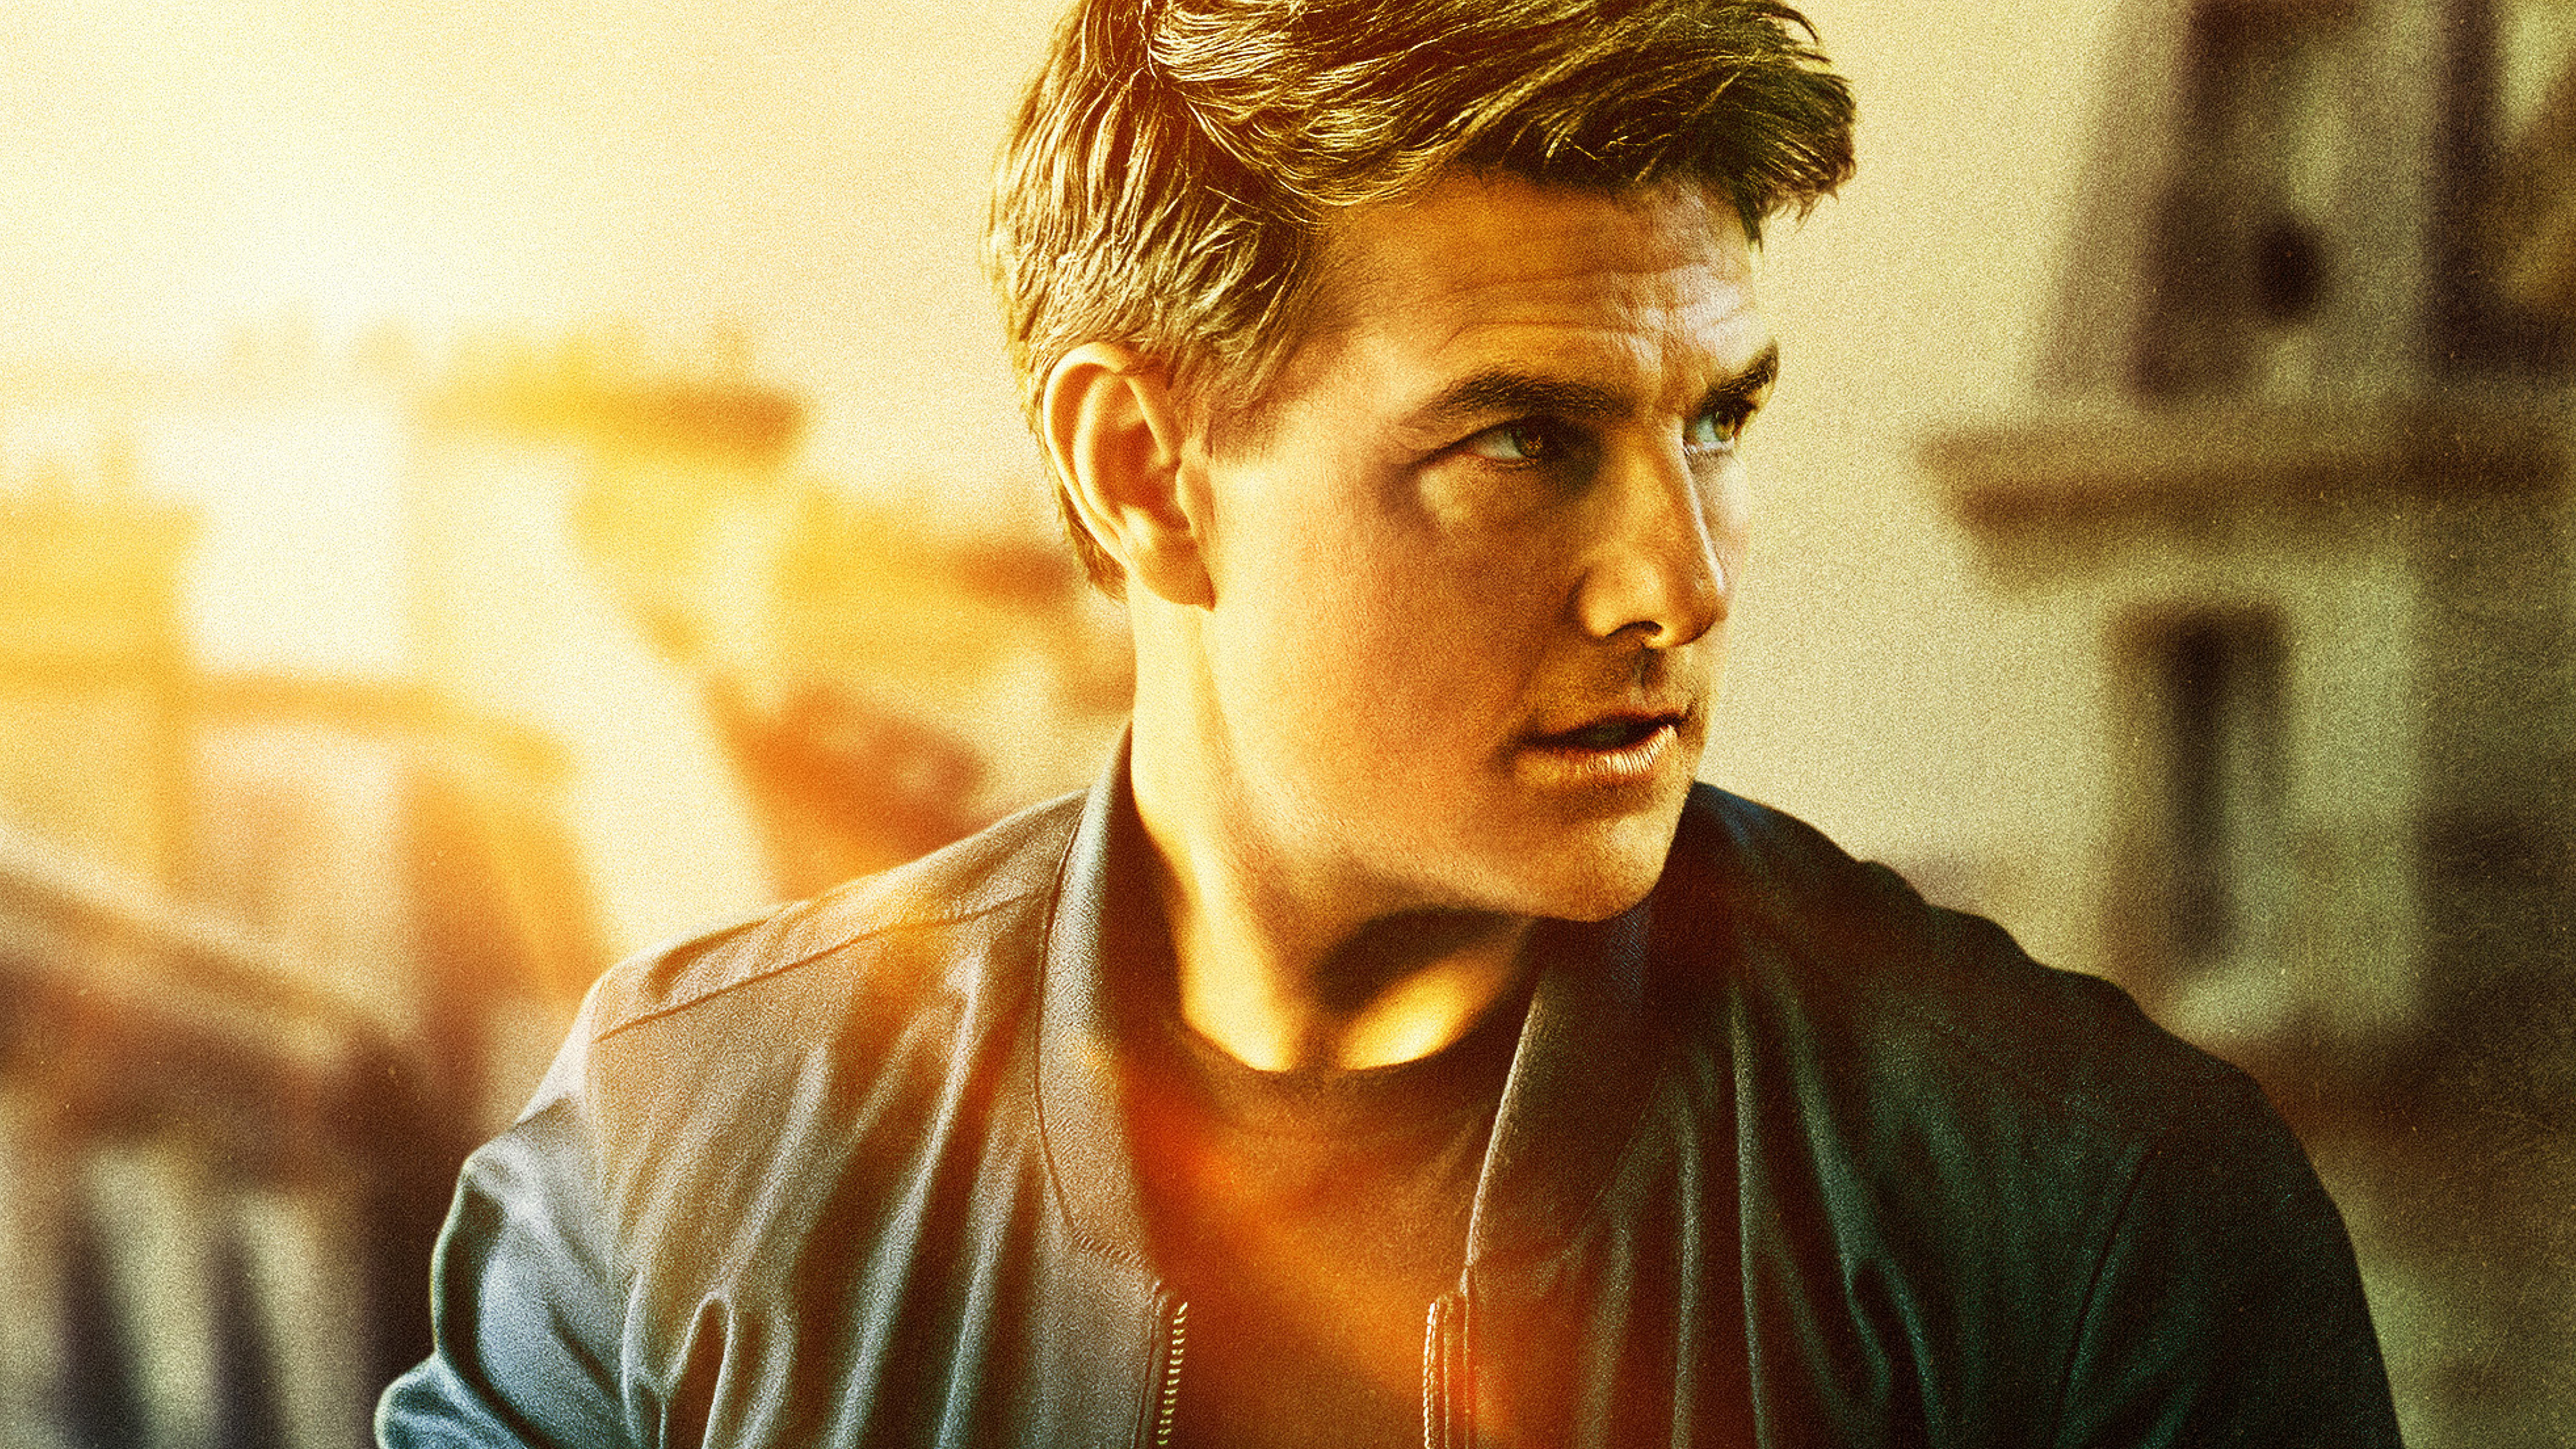 tom cruise as ethan hunt in mission impossible fallout movie, hd